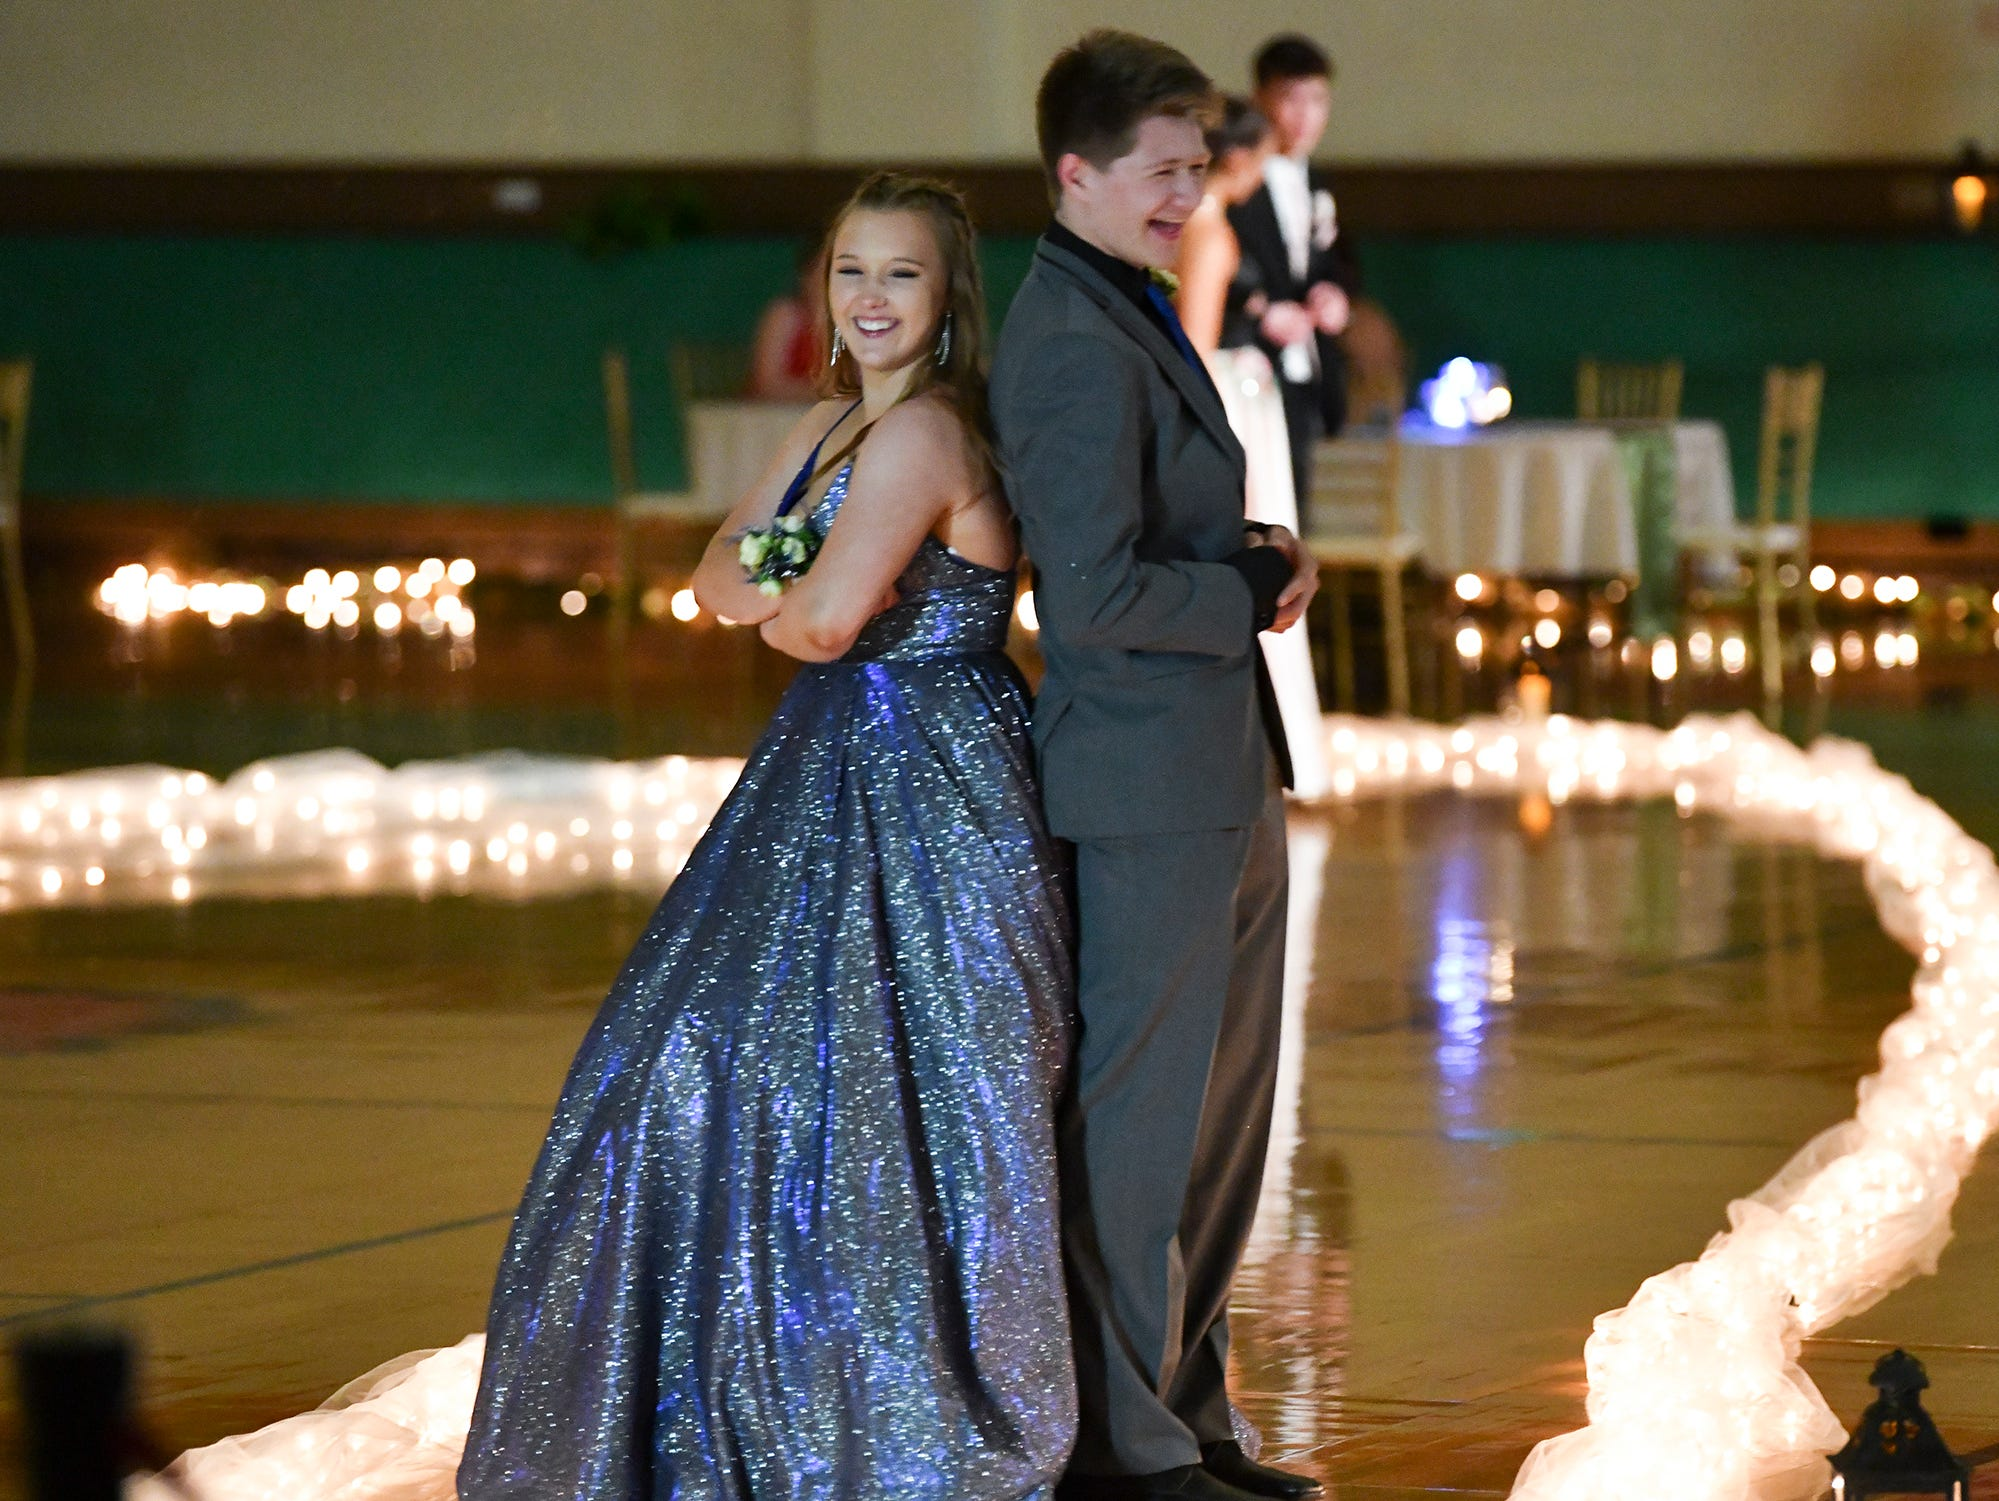 Couples strike a pose during prom grand march Saturday, April 27, at Tech High School in St. Cloud.